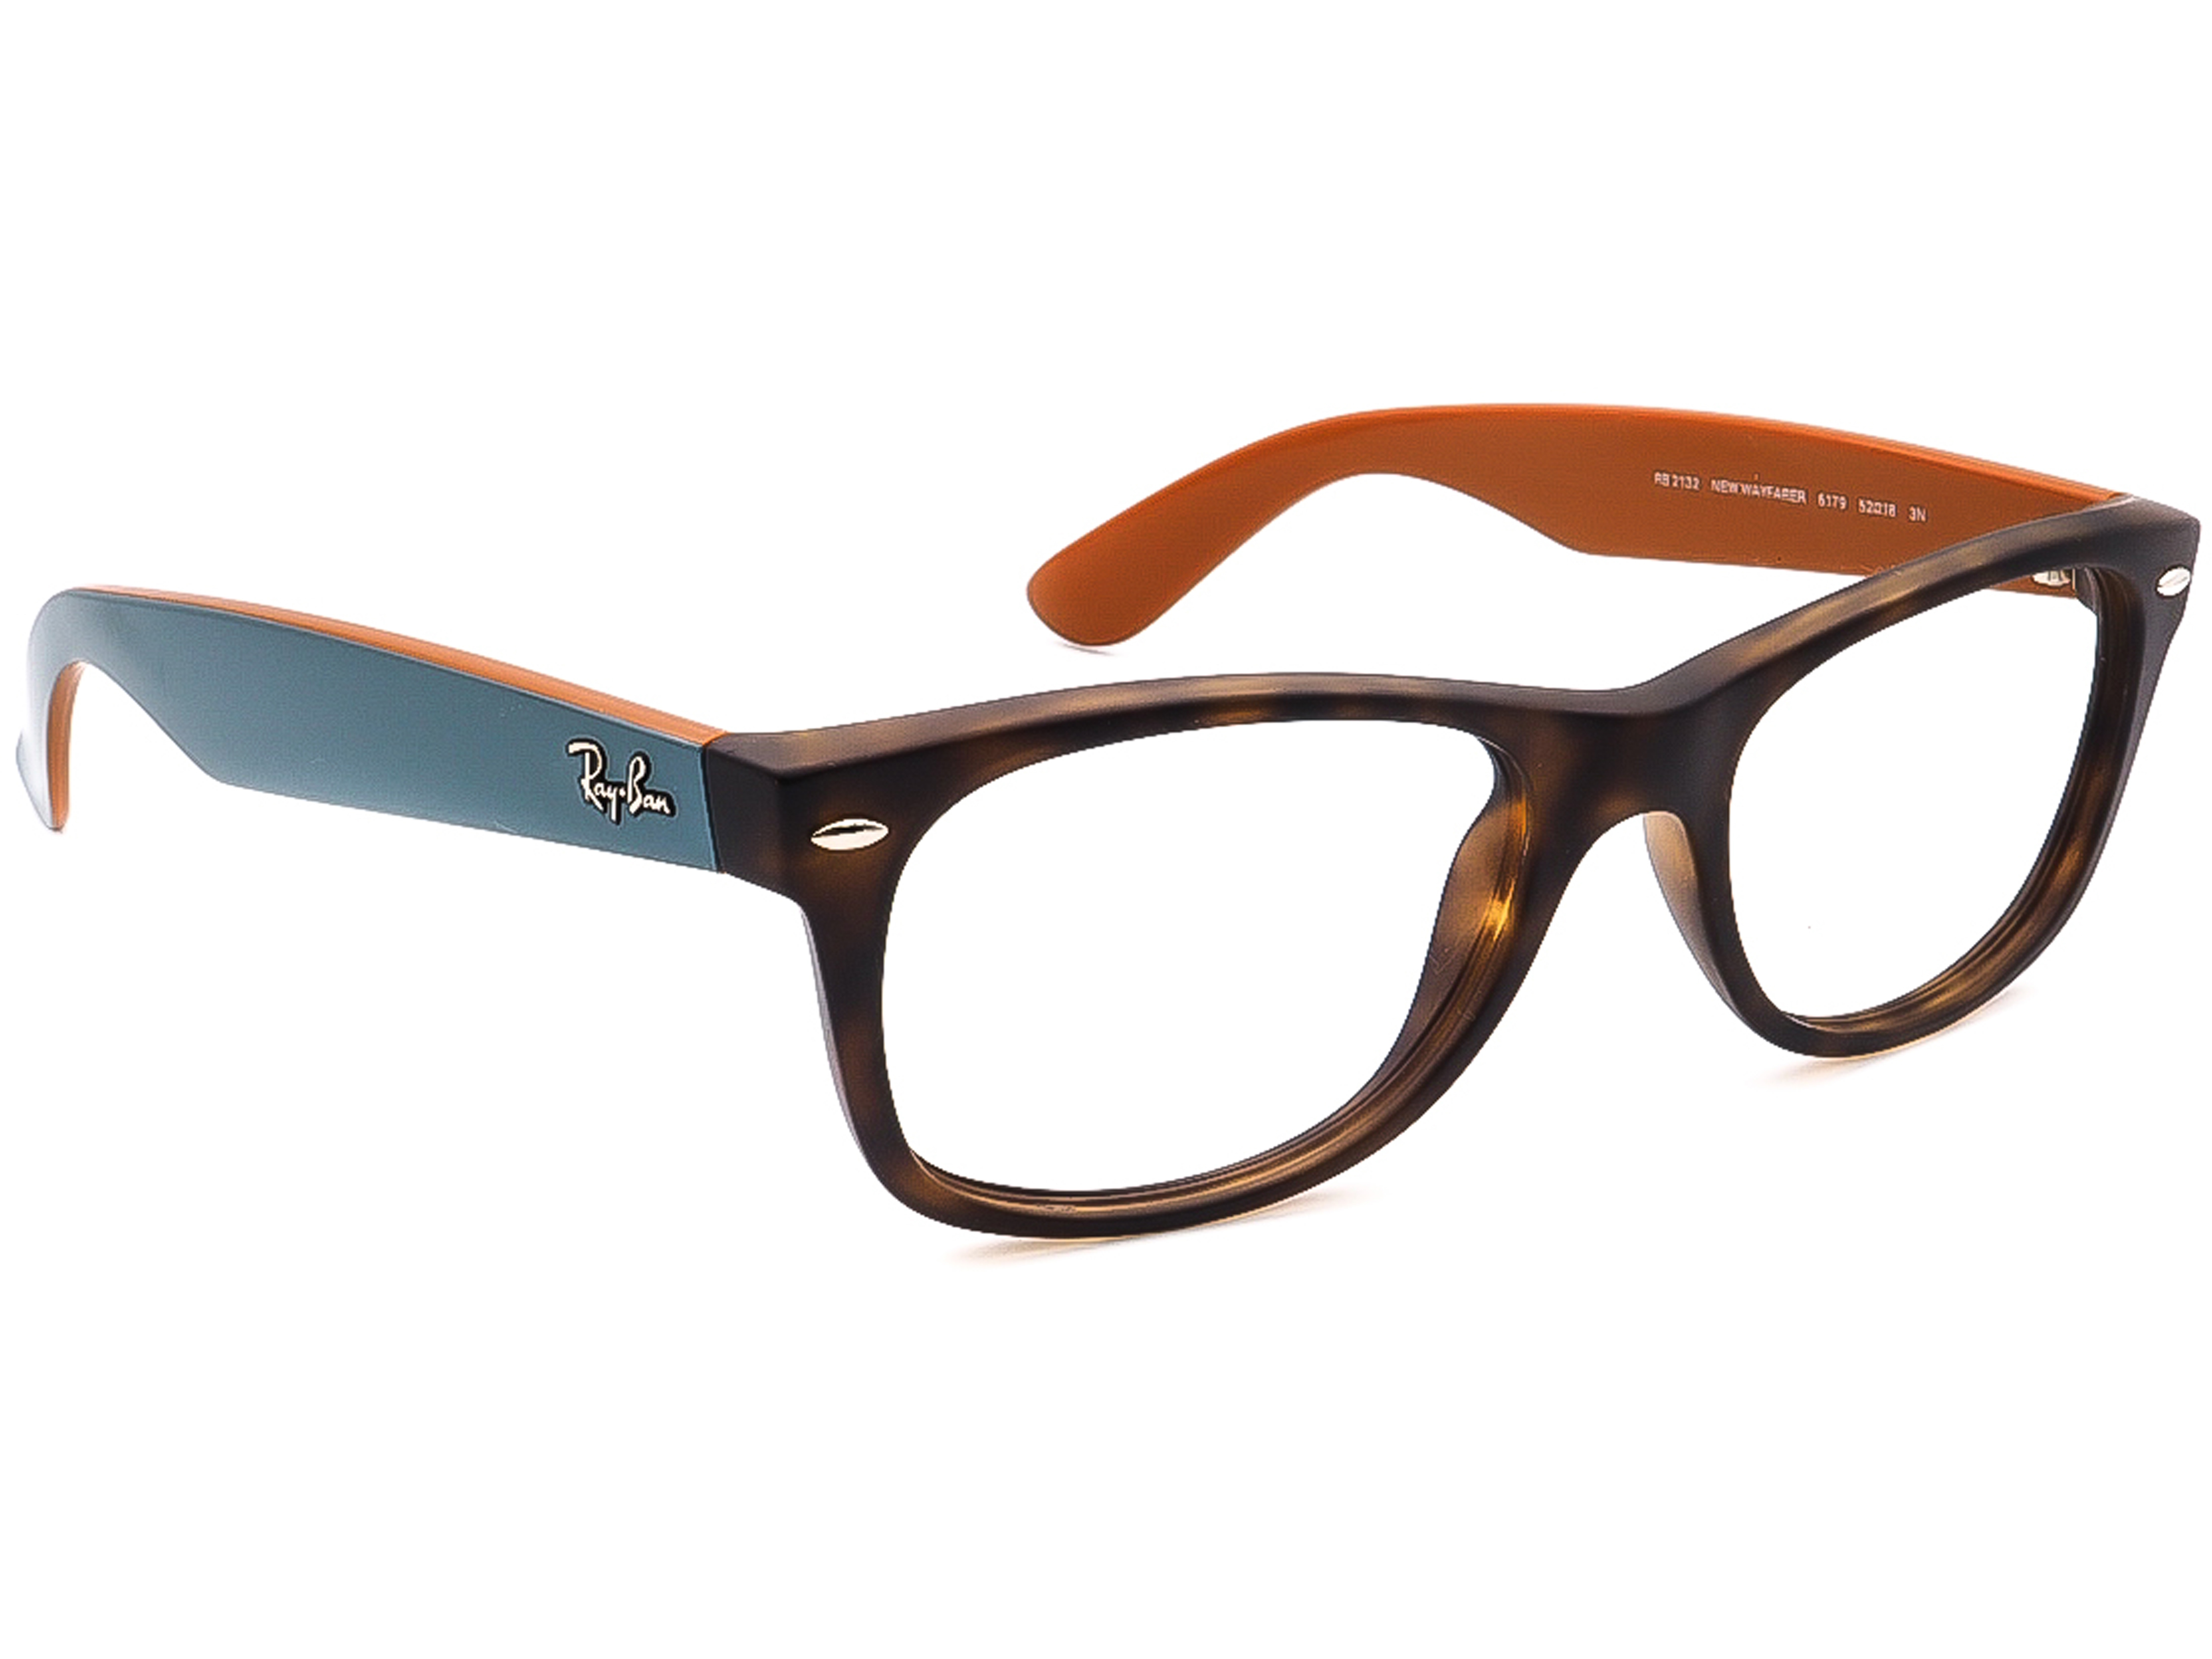 Ray Ban RB 2132 New Wayfarer 6179 Sunglasses Frame Only